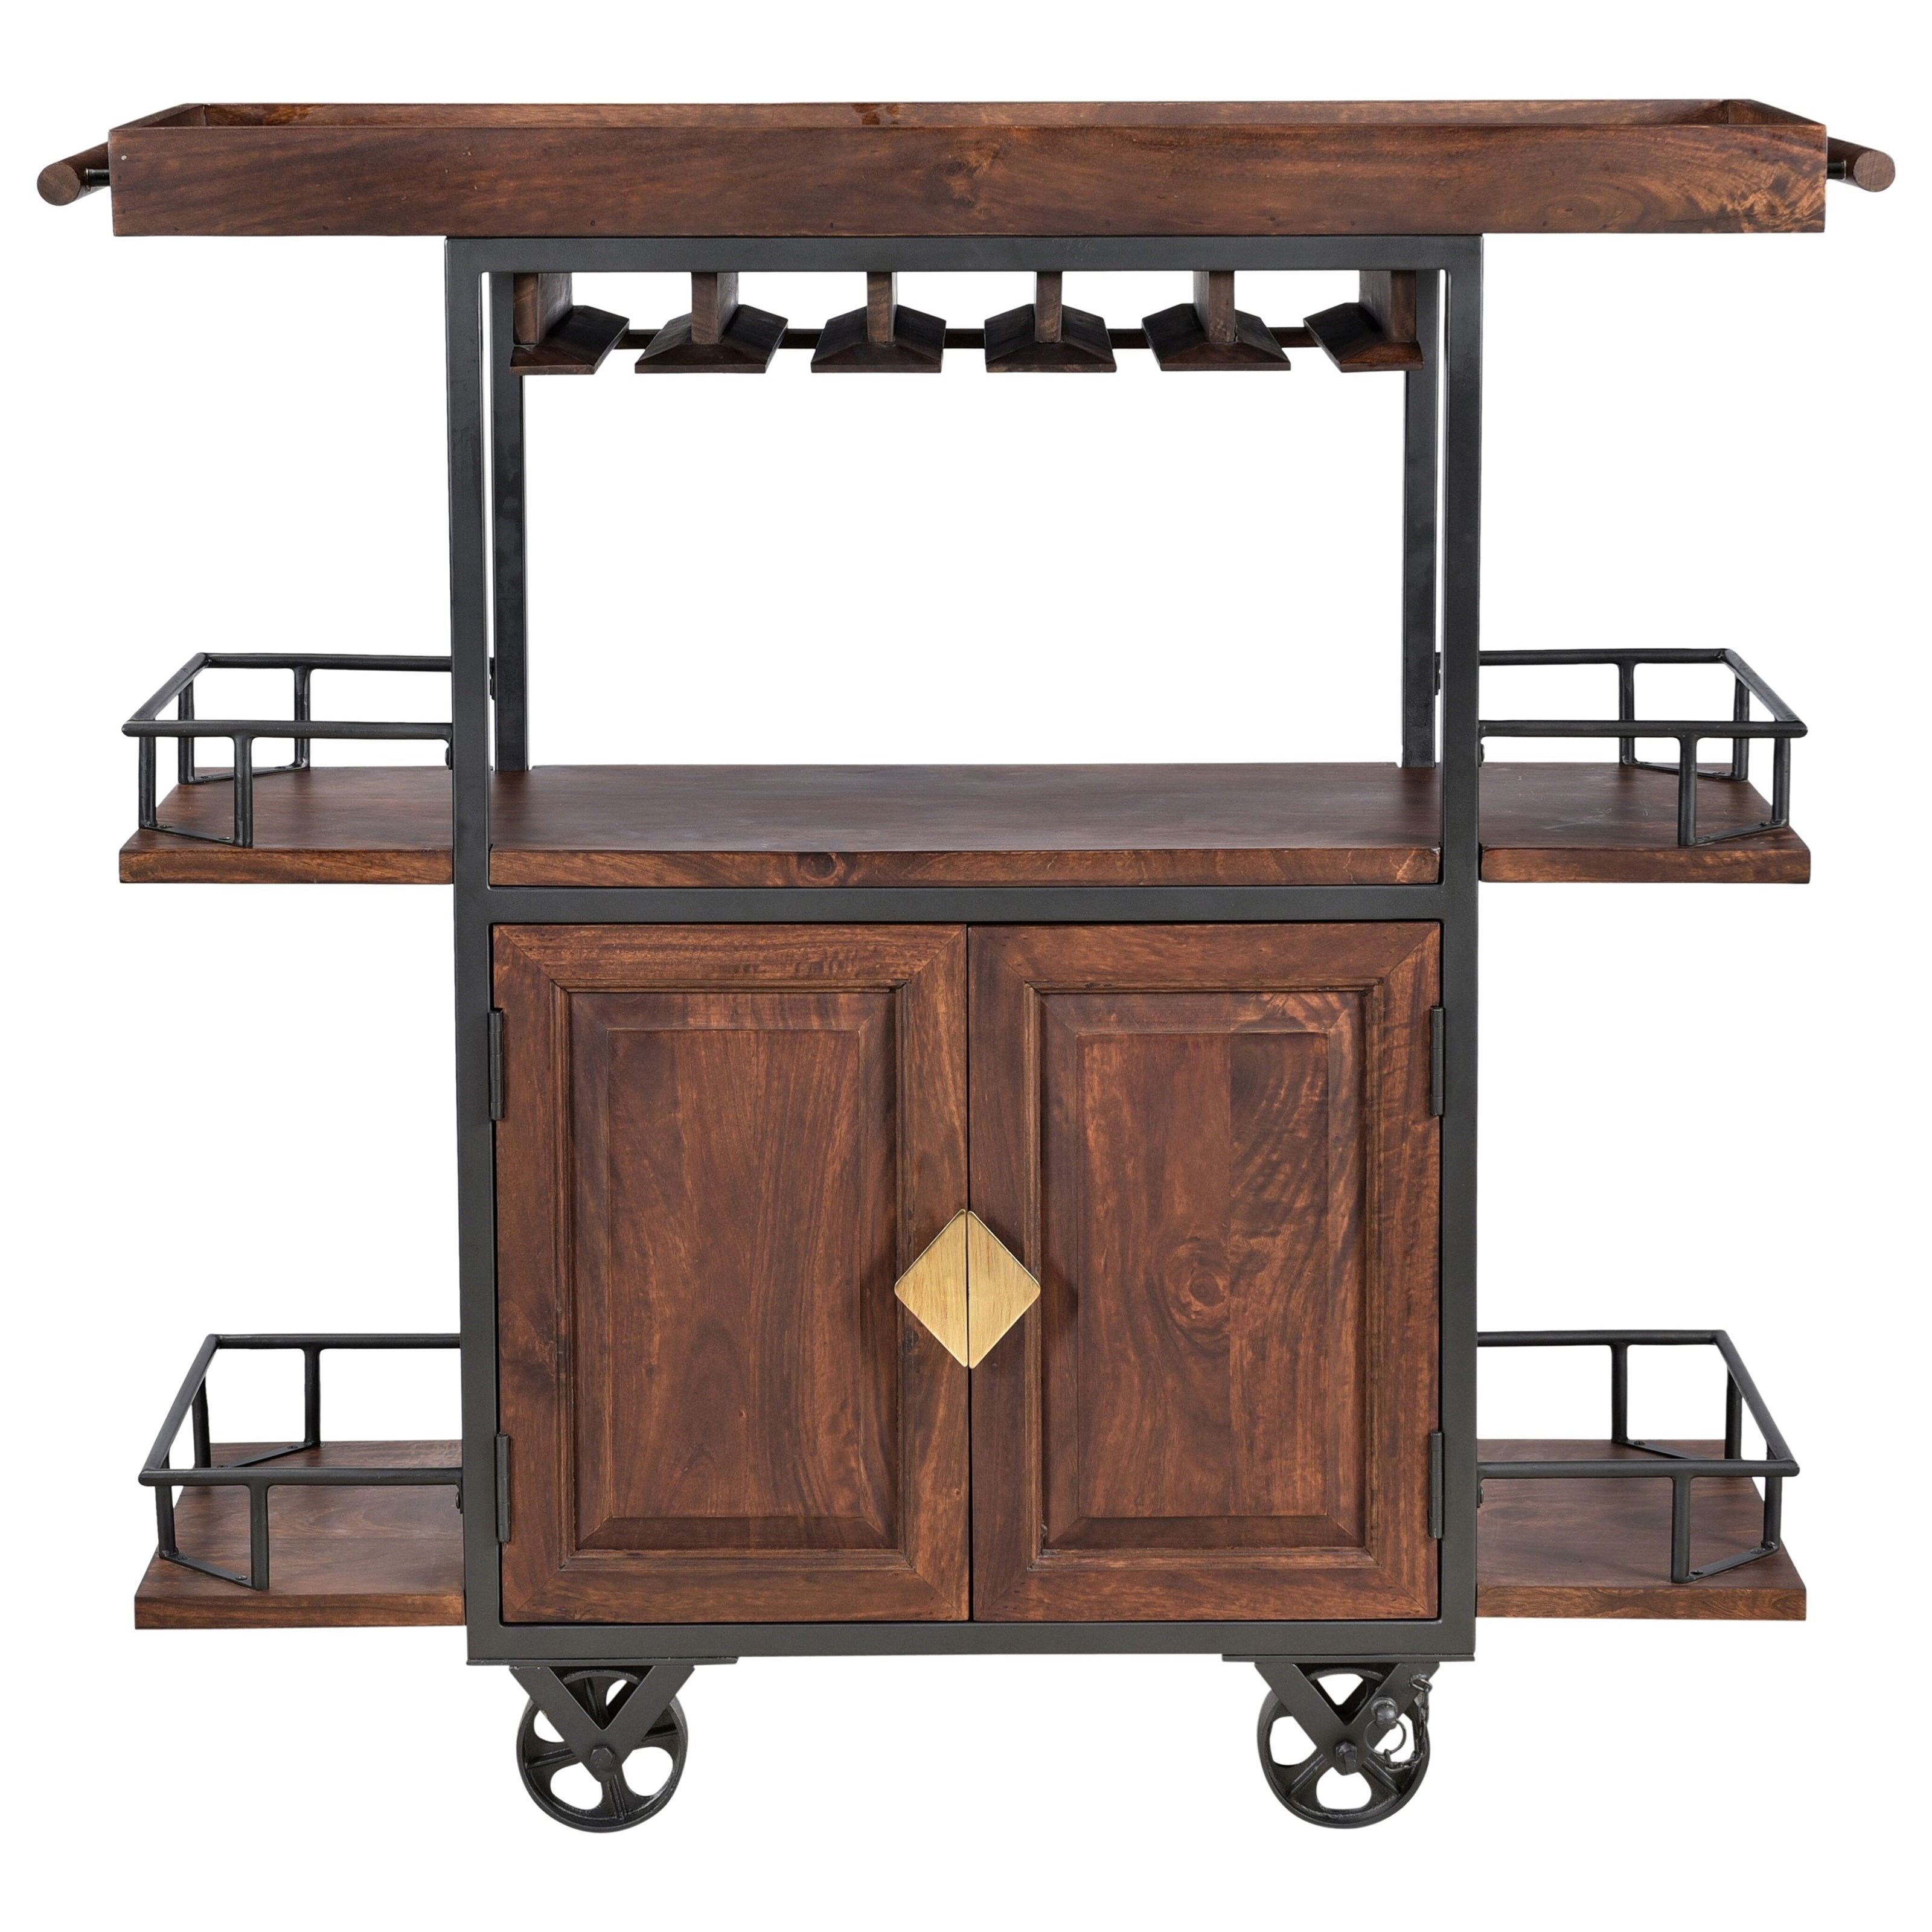 C2C Accents Two Door Wine Trolley by C2C at Walker's Furniture